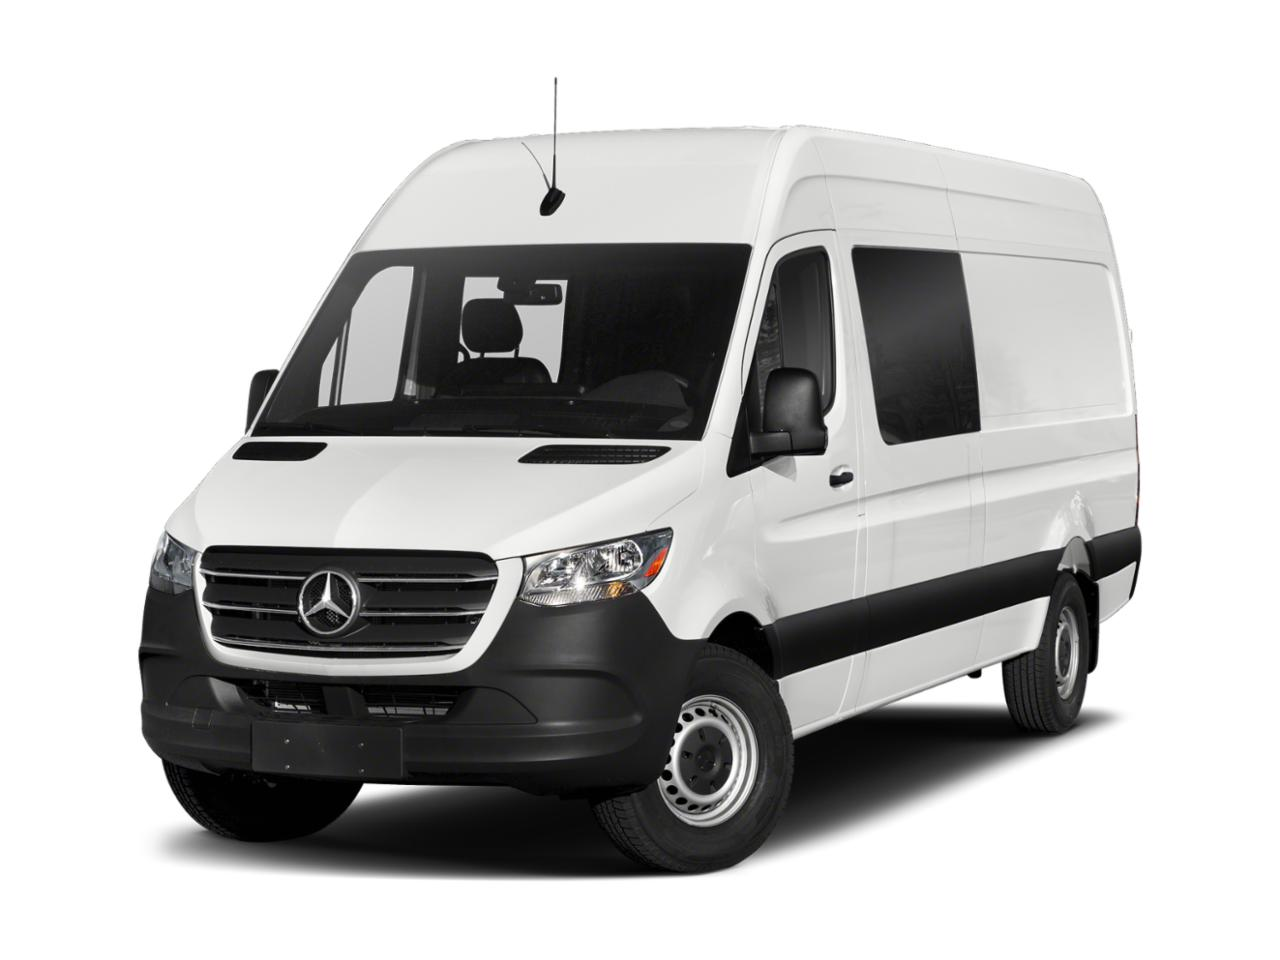 2020 Mercedes-Benz Sprinter Crew Van Vehicle Photo in Houston, TX 77079